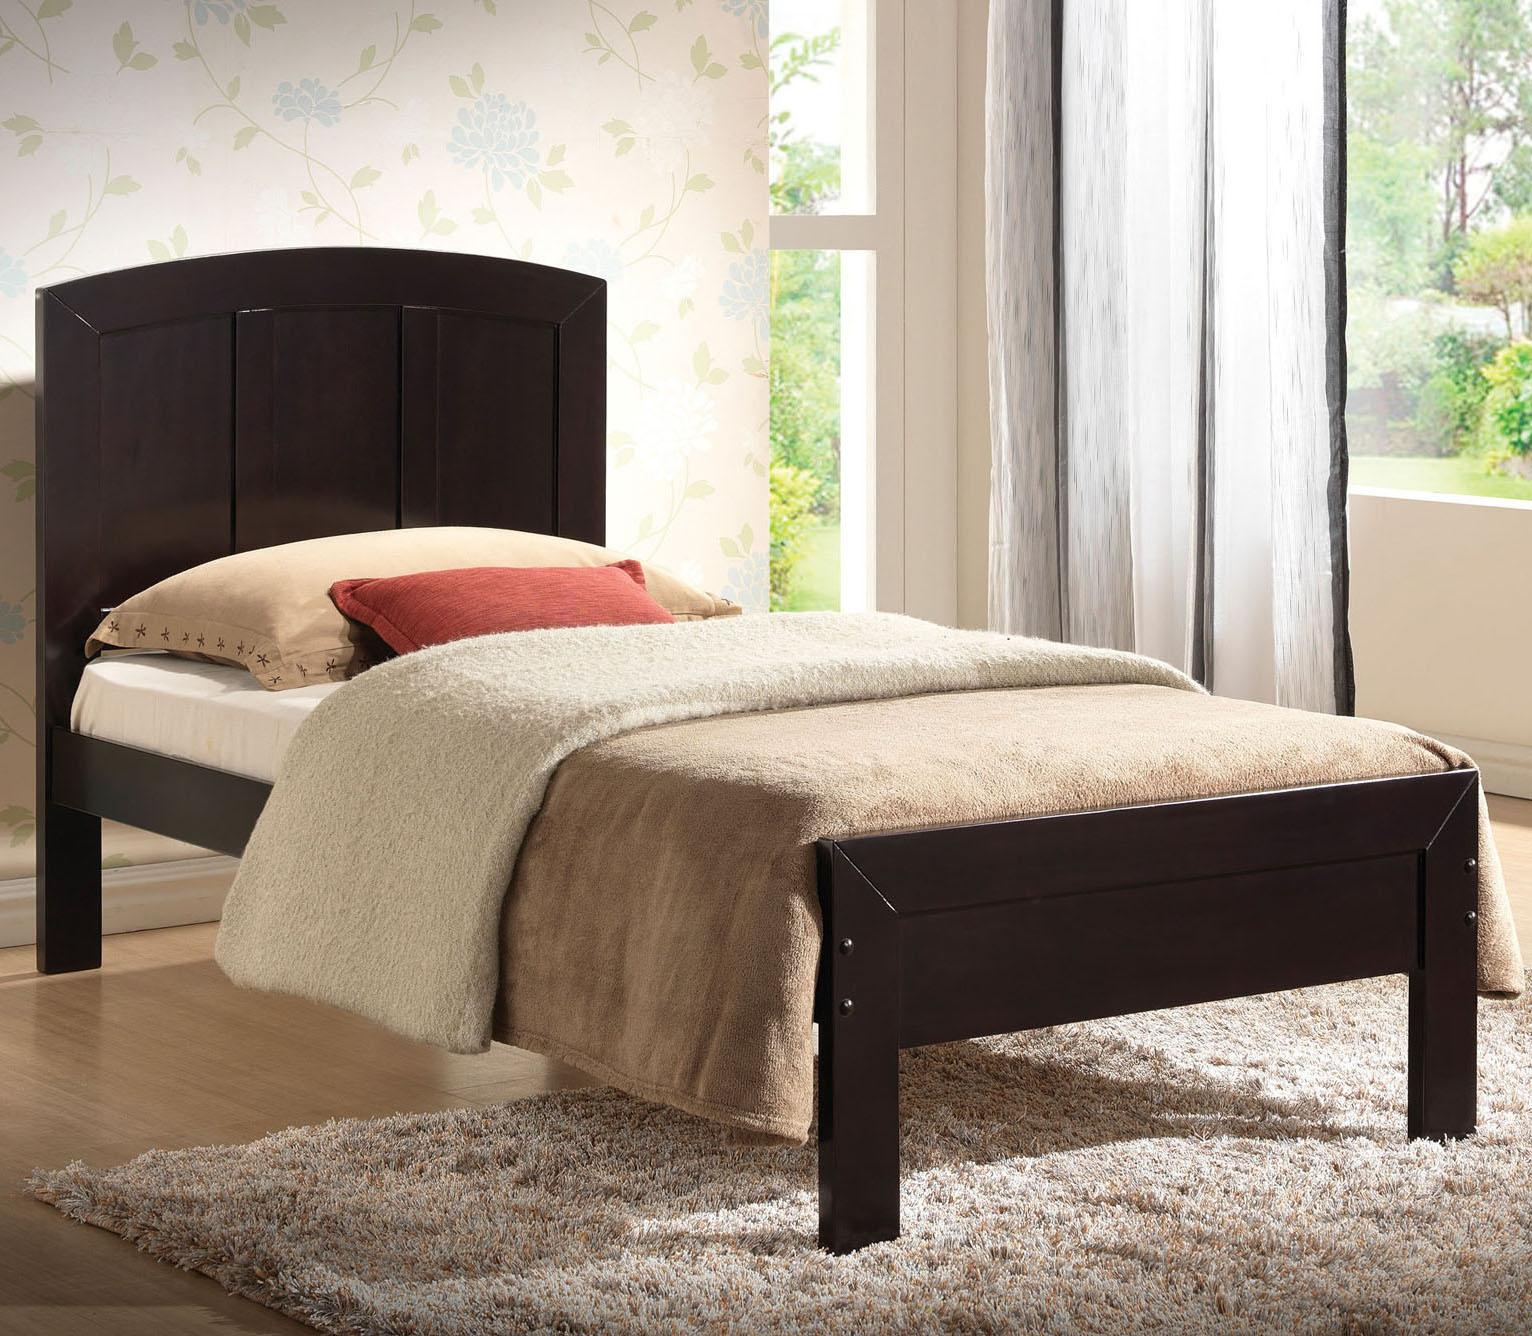 Acme Furniture Donato Twin Bed - Item Number: 21526T